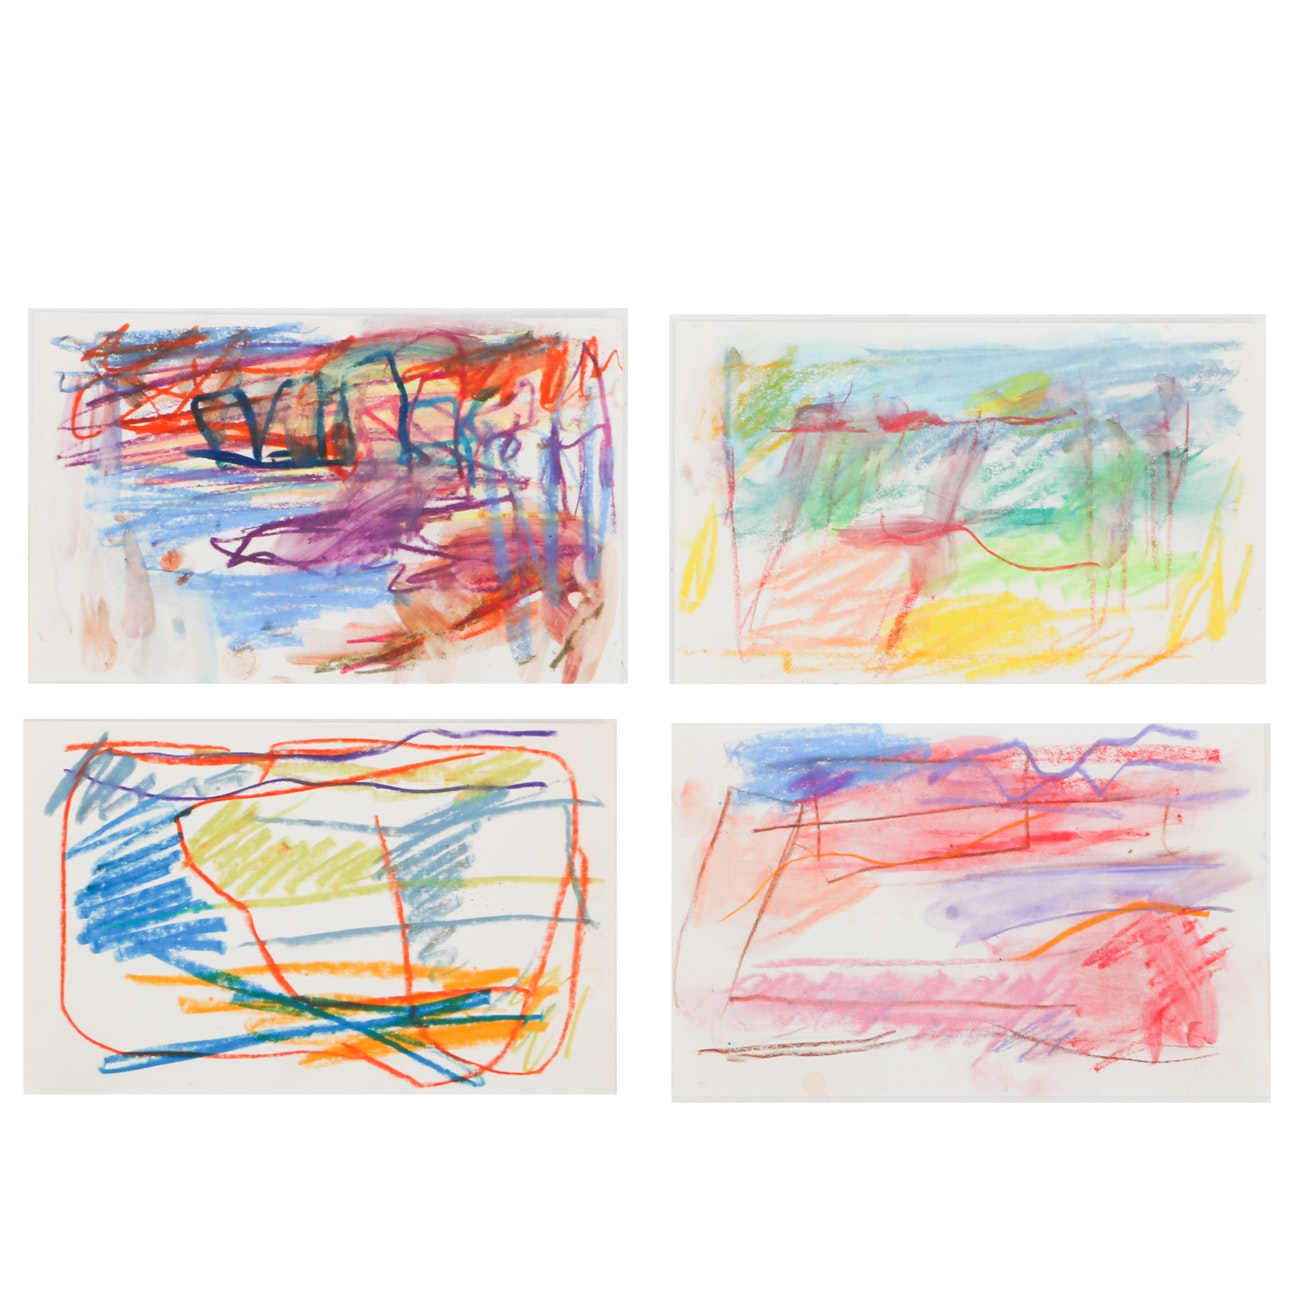 Four Paul Chidlaw Original Abstract Oil Pastel Drawings on Paper